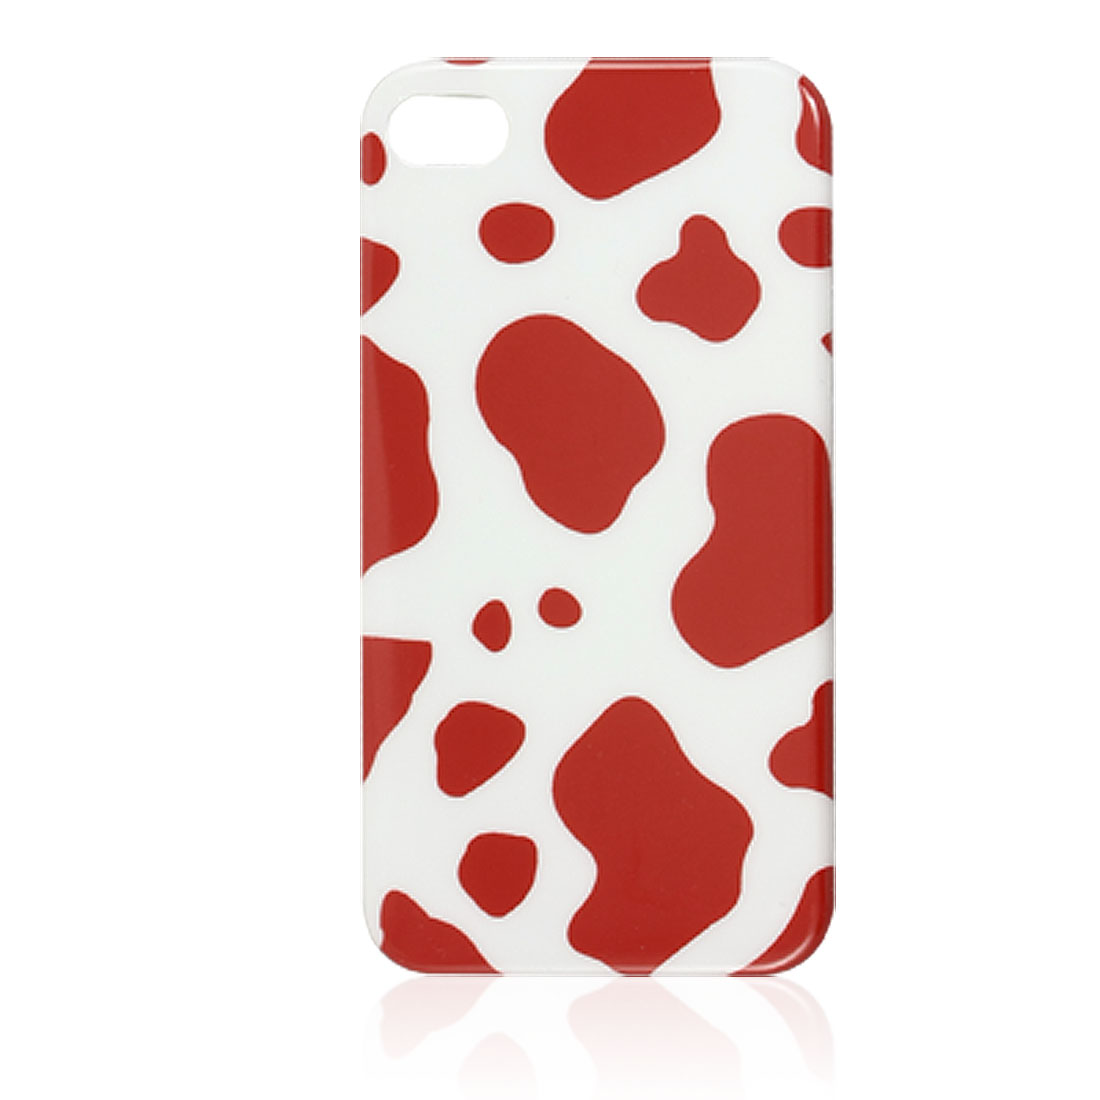 IMD Red Dairy Cow Pattern Plastic Back Shell Cover for iPhone 4 4G 4S